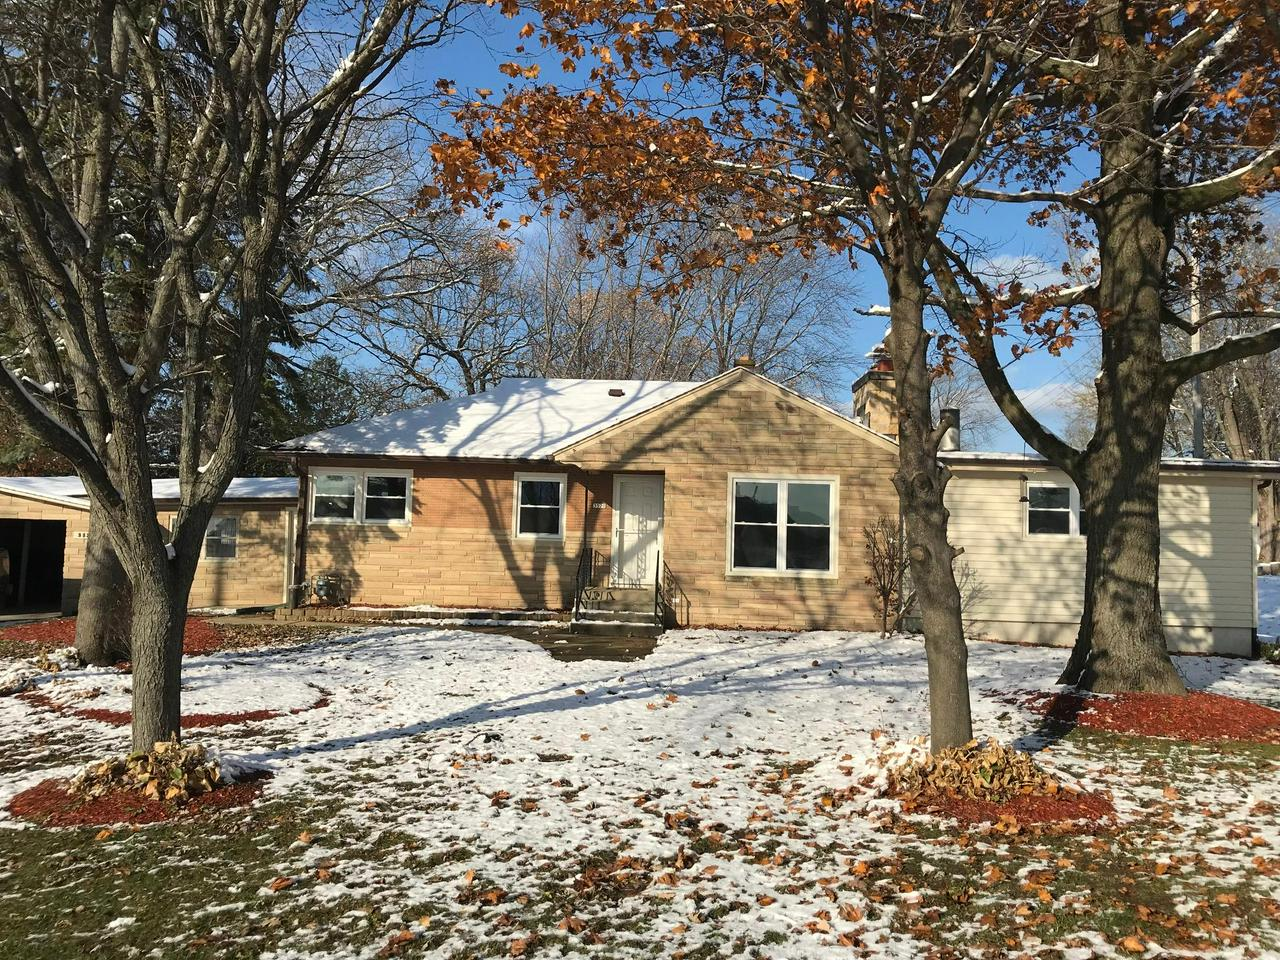 2 acres of pure perfection! This ranch style home is a MUST to see! Home is nestled on almost 2 acres!  This cozy home is COMPLETELY REMODELED!  With FOUR large bedrooms and TWO full bathrooms, you can't ask for more! The bright and brand new eat in kitchen offers plank style flooring with new cabinets and counter tops!   Cozy up in the spacious living room with a natural fireplace.  Perfect for the holidays!   Each and every bedroom is extremely spacious and has a TON of closest space!    Bring your rec room ideas to the large space offered downstairs.   Home has BRAND NEW IRON CURTAIN, WATER SOFTENER AND 50 GALLON WATER HEATER!   New Carpet in all rooms,  6 panel doors, and closets.  All NEW windows and DOORS! 2 car extra deep garage.   Outside is perfect for bonfires!  MOVE IN READY!